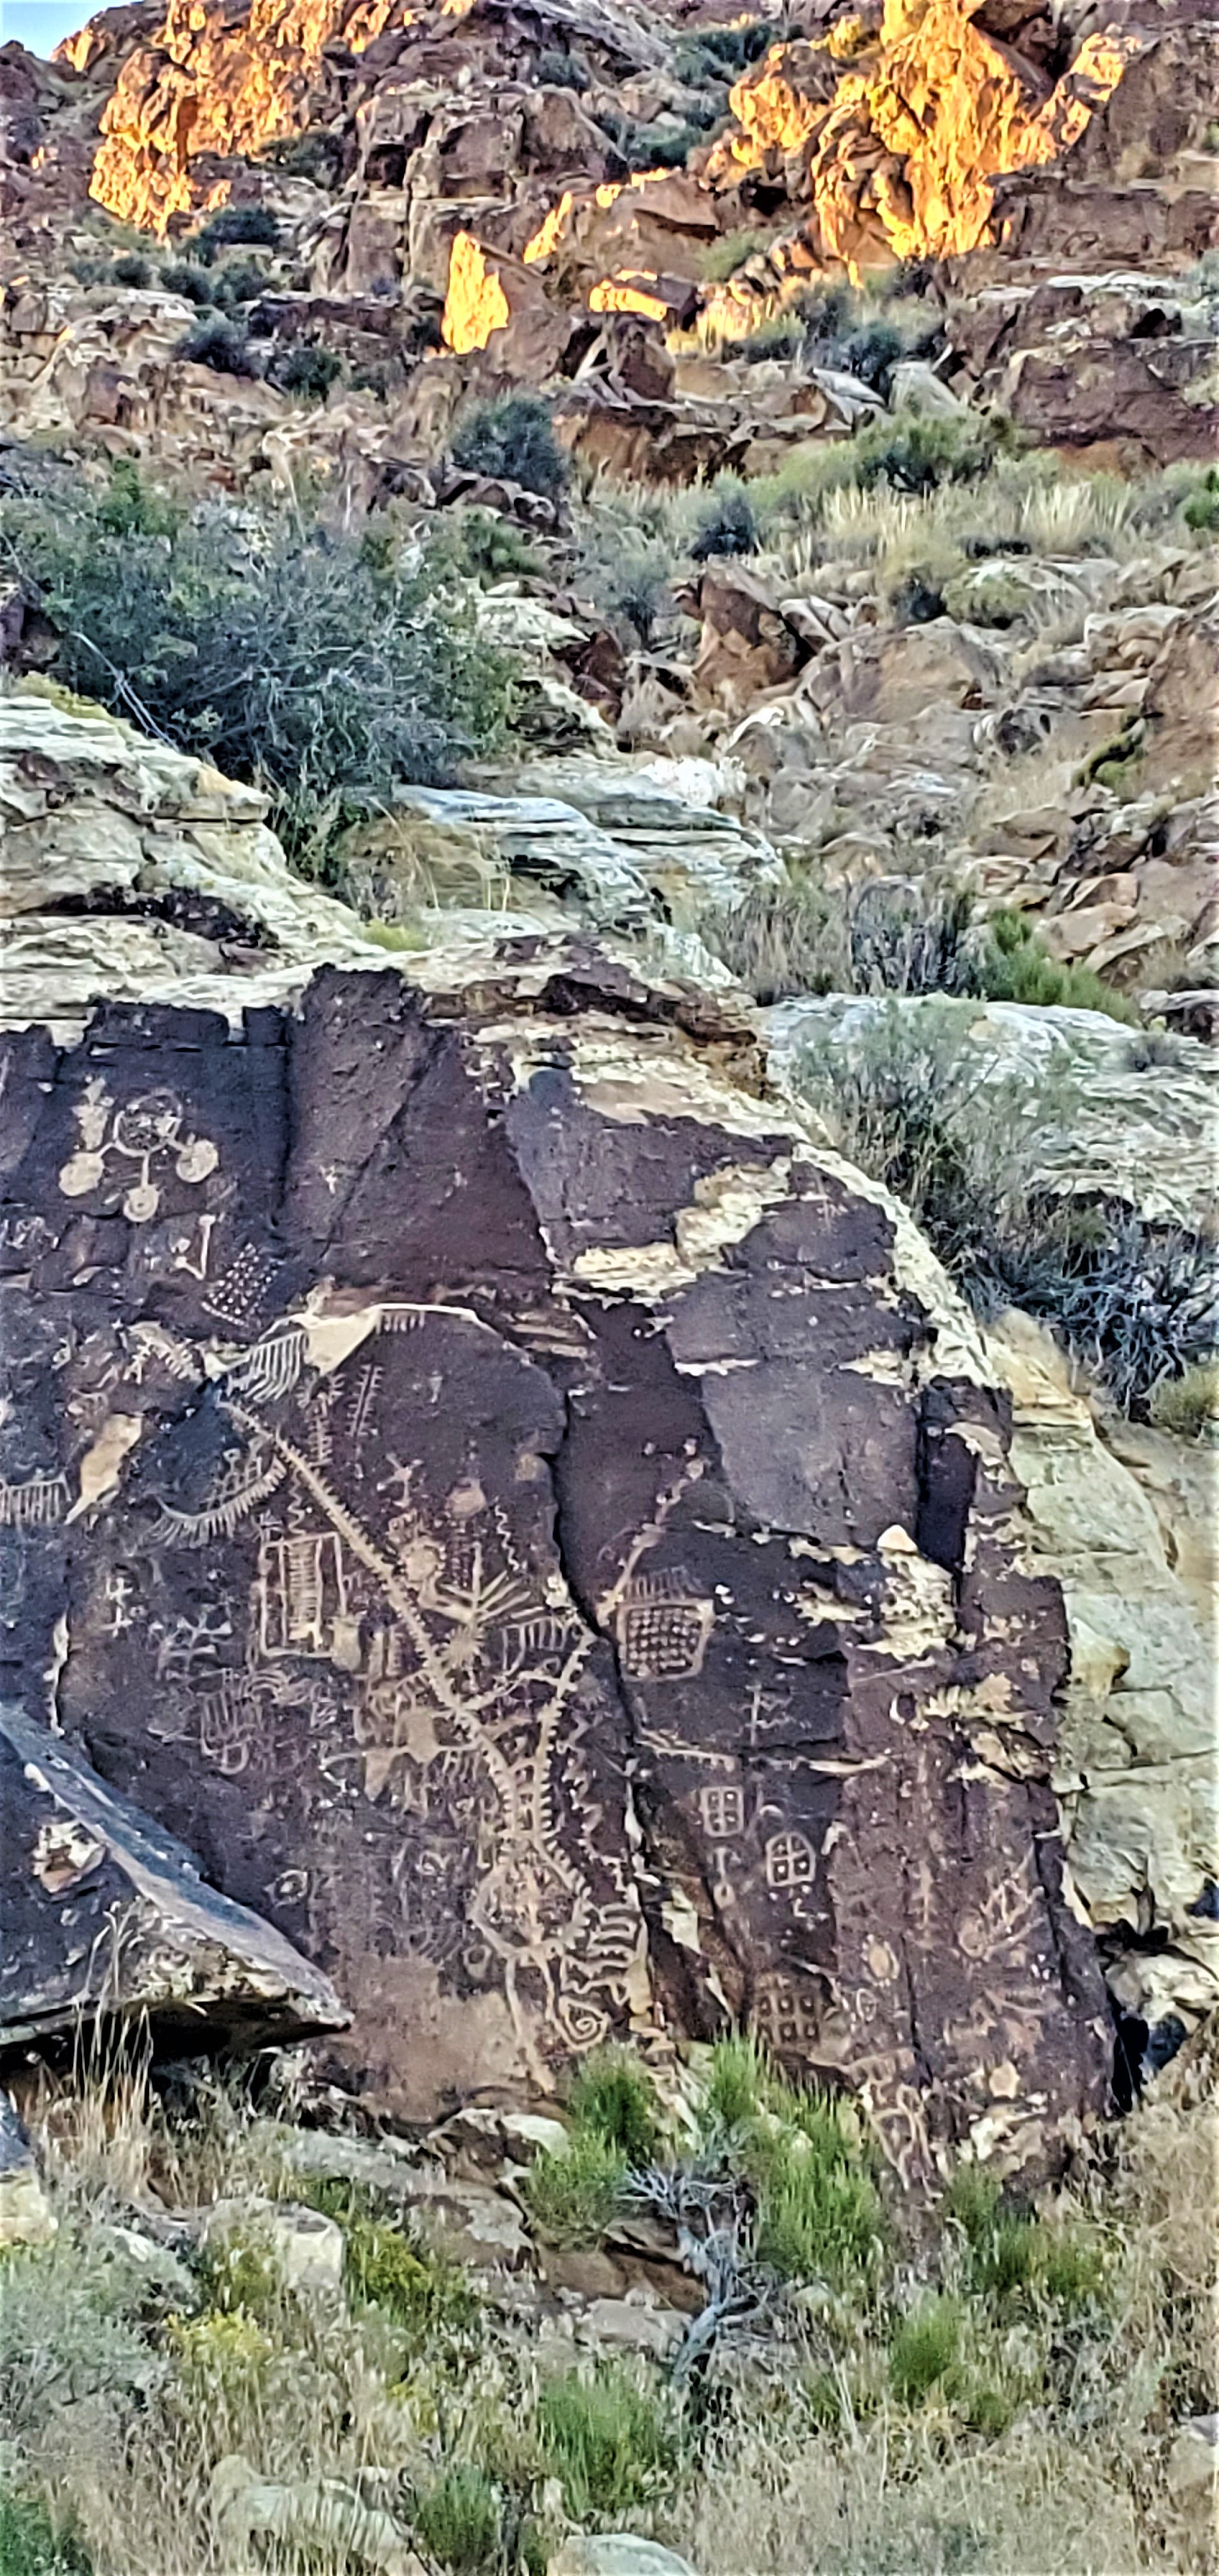 Petroglyphs created by Native Americans are believed to be a calendar at Parowan Gap, Utah